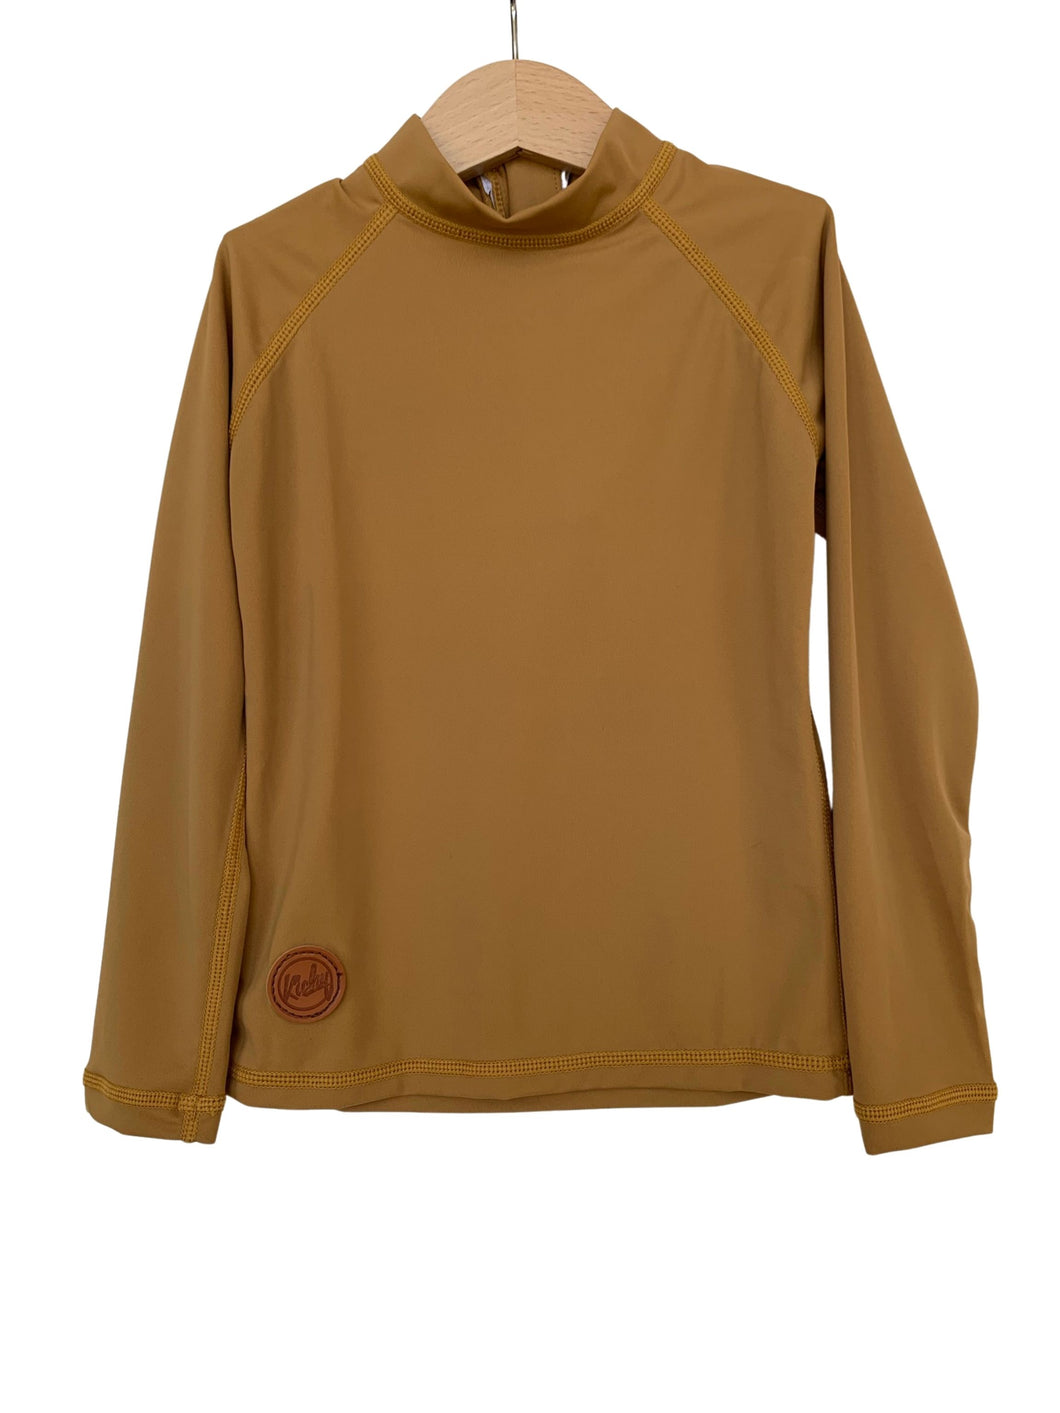 NEW Rashguard Top - Golden Mustard